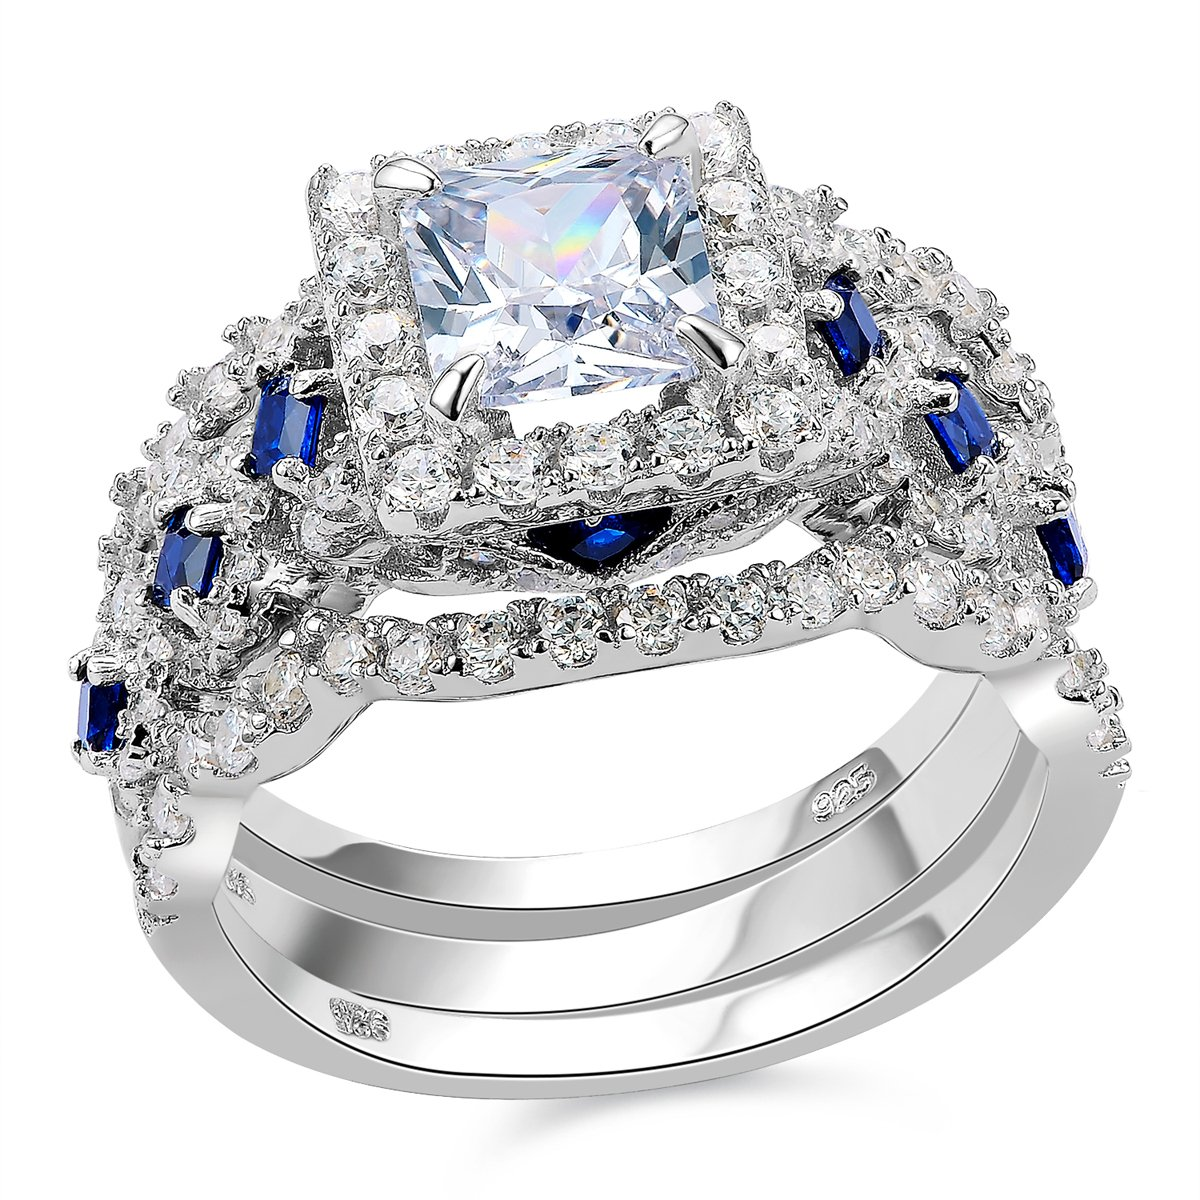 Newshe Engagement Wedding Ring Set 925 Sterling Silver 3pcs 2.5ct Princess White Cz Blue Size 7